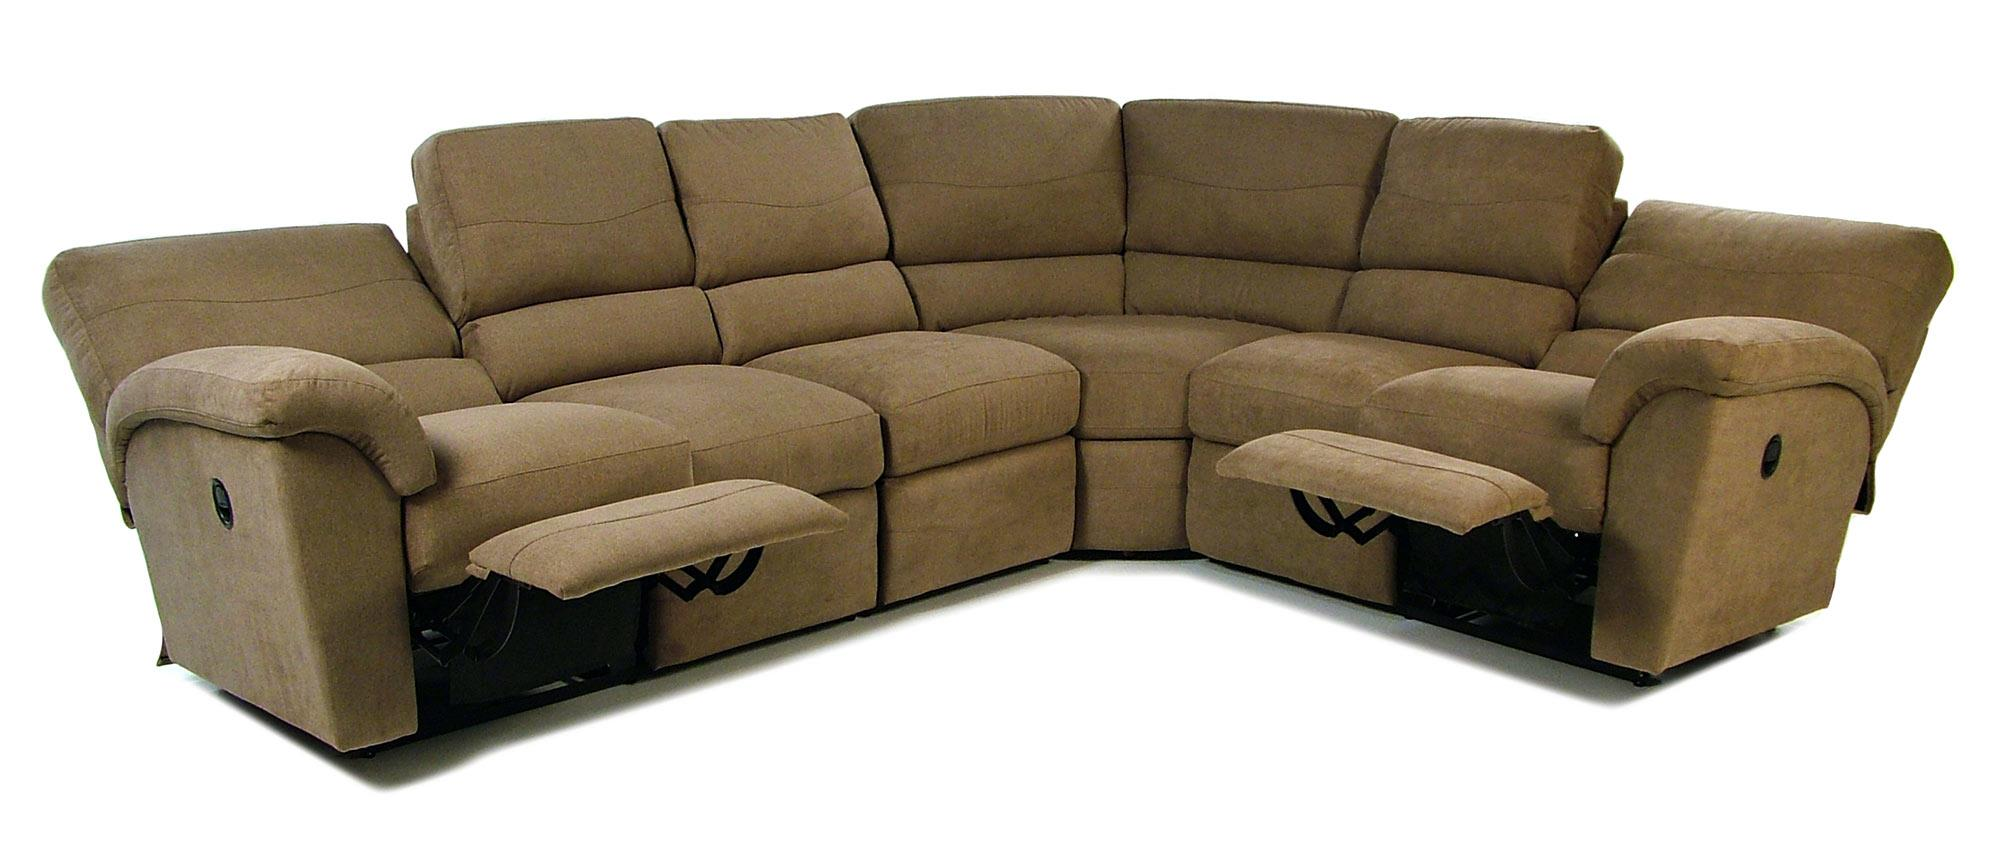 tyson sectional sofa down filled canada la z boy 4pc reclining rotmans